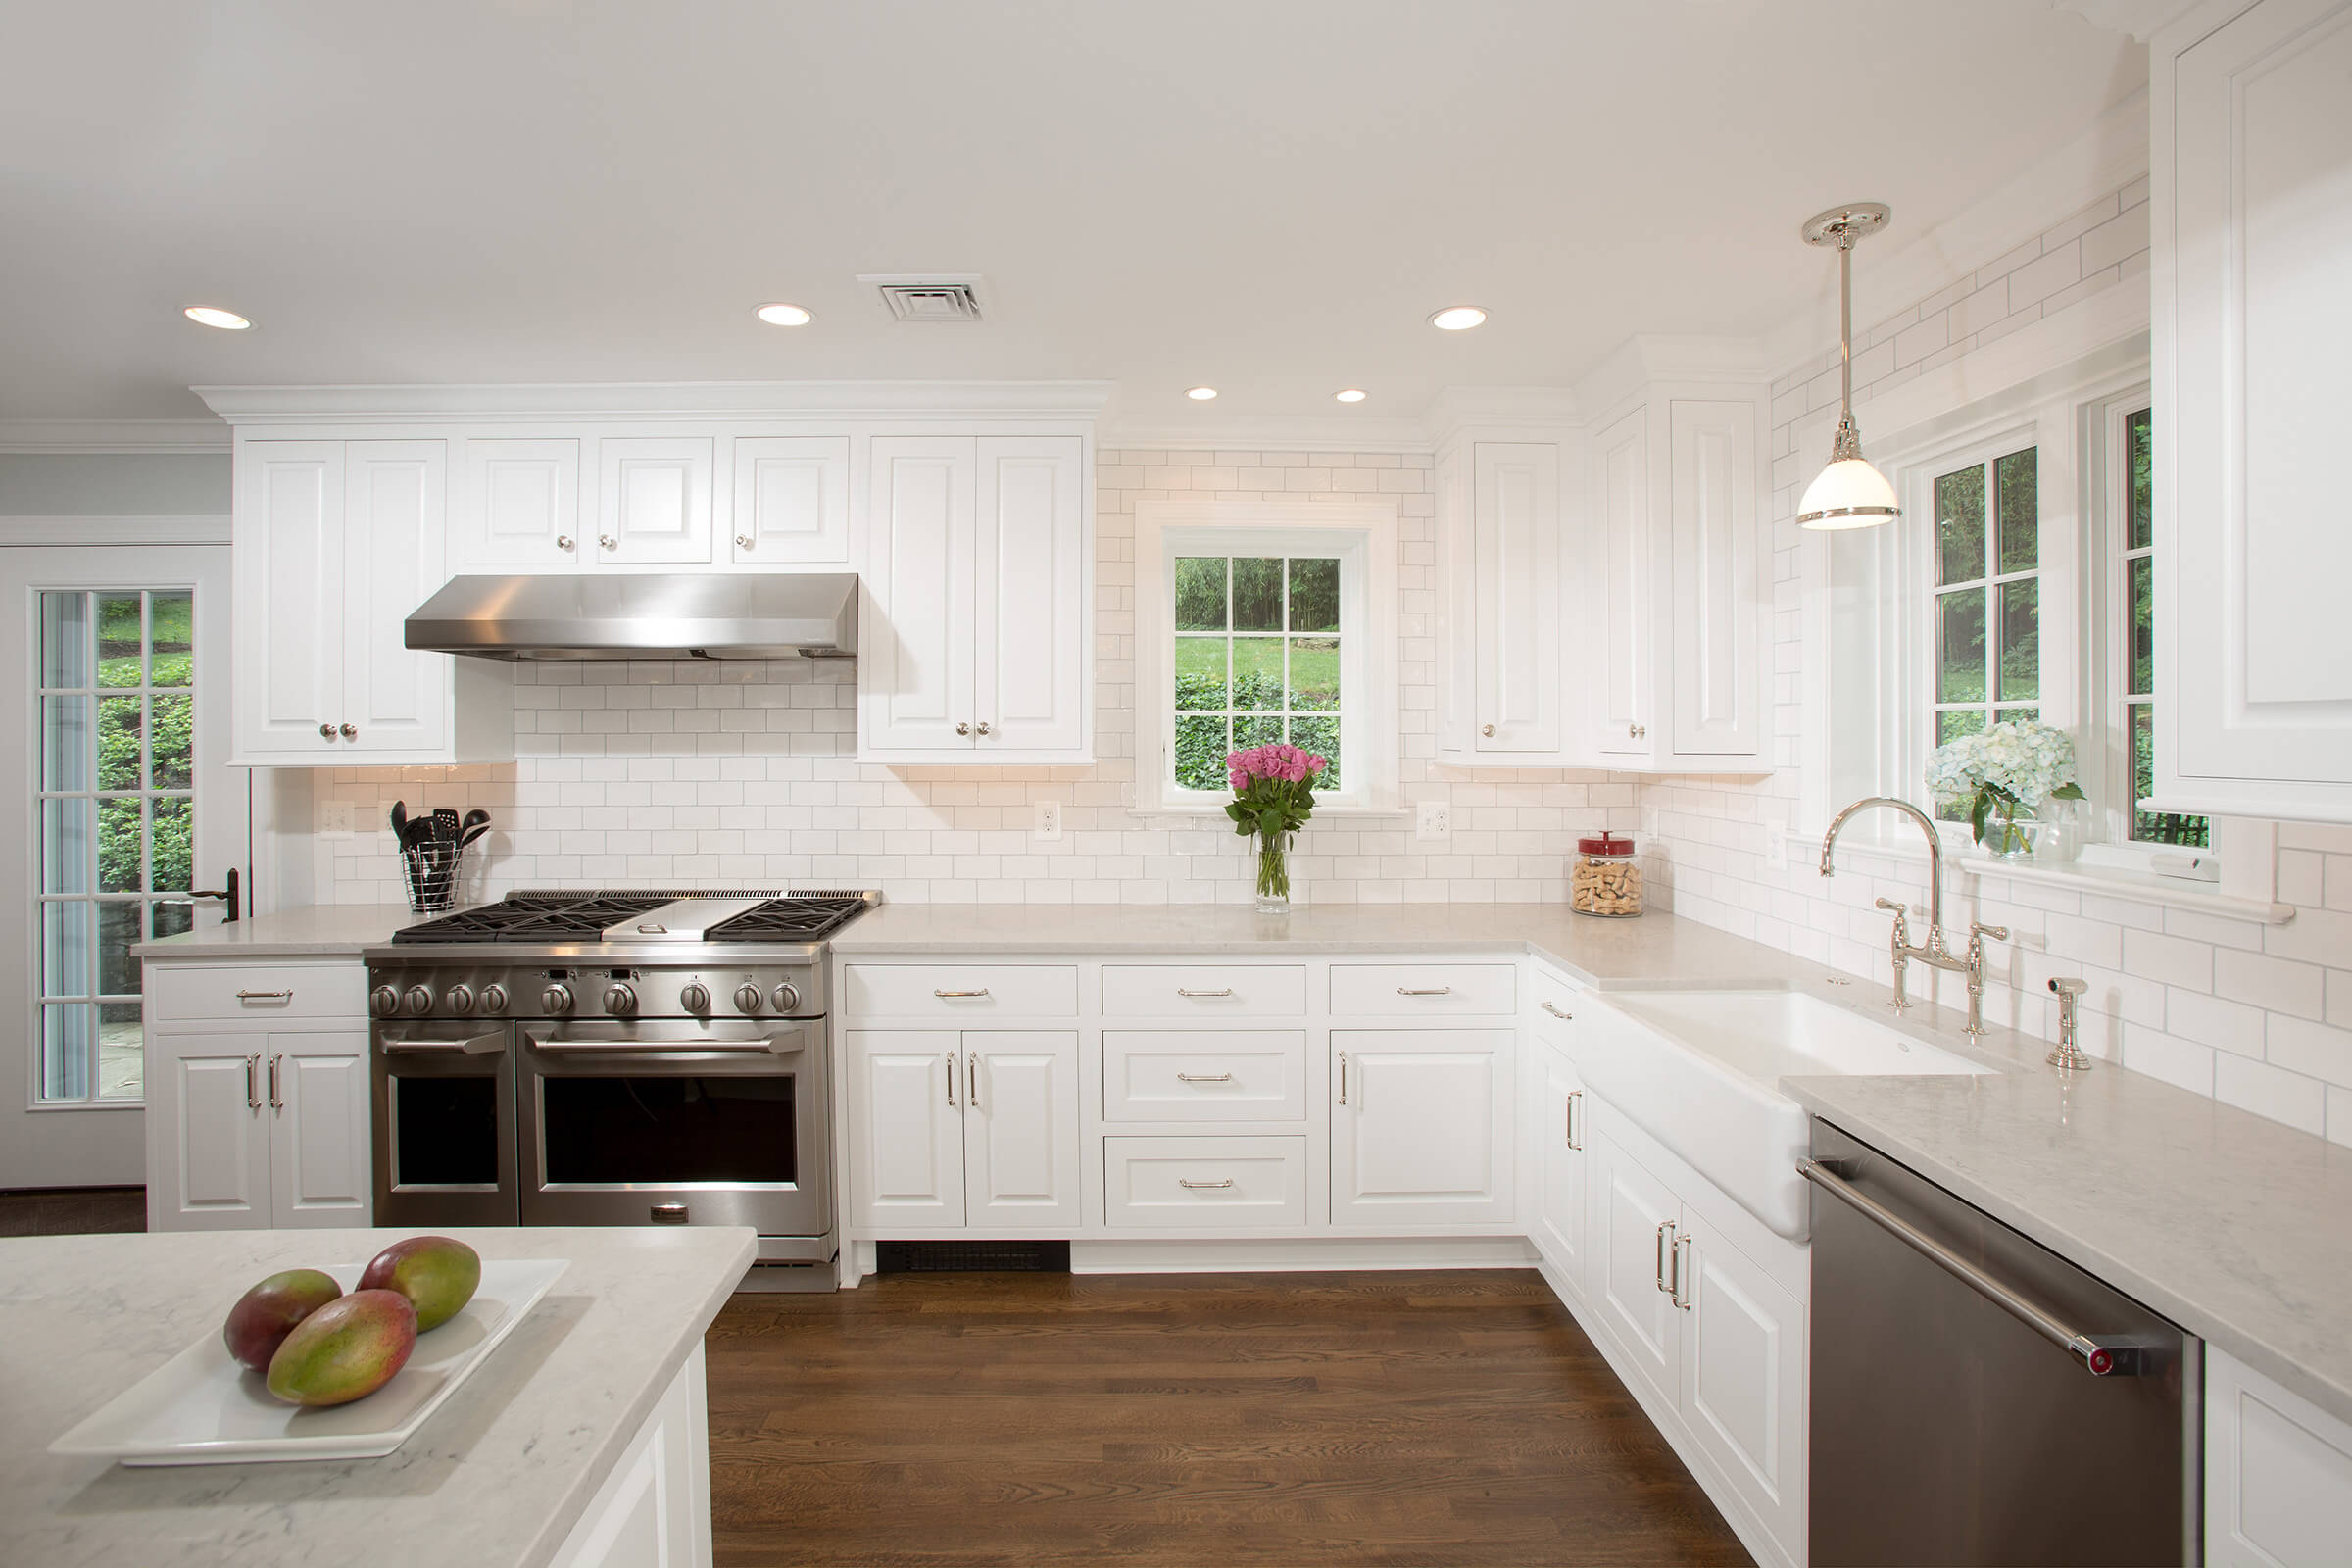 renovated kitchen delta faucet parts diagram renovation opens first floor of 1930s belle haven home